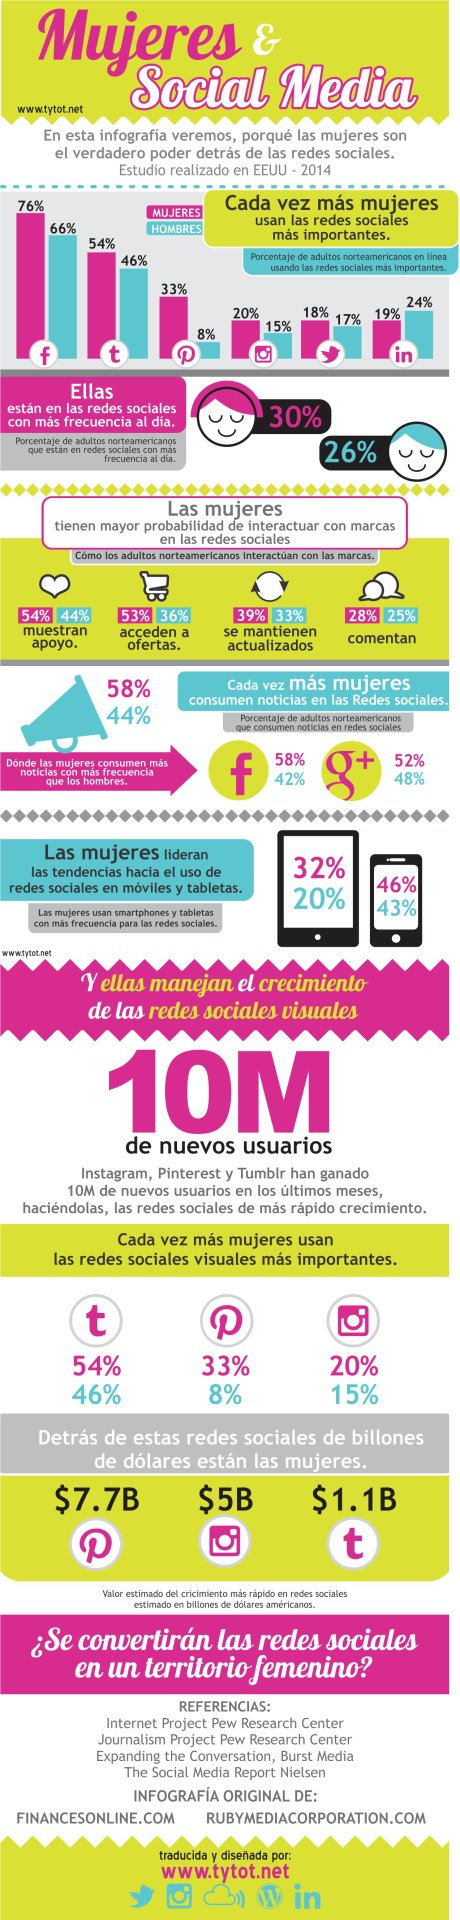 mujeres-redes-sociales